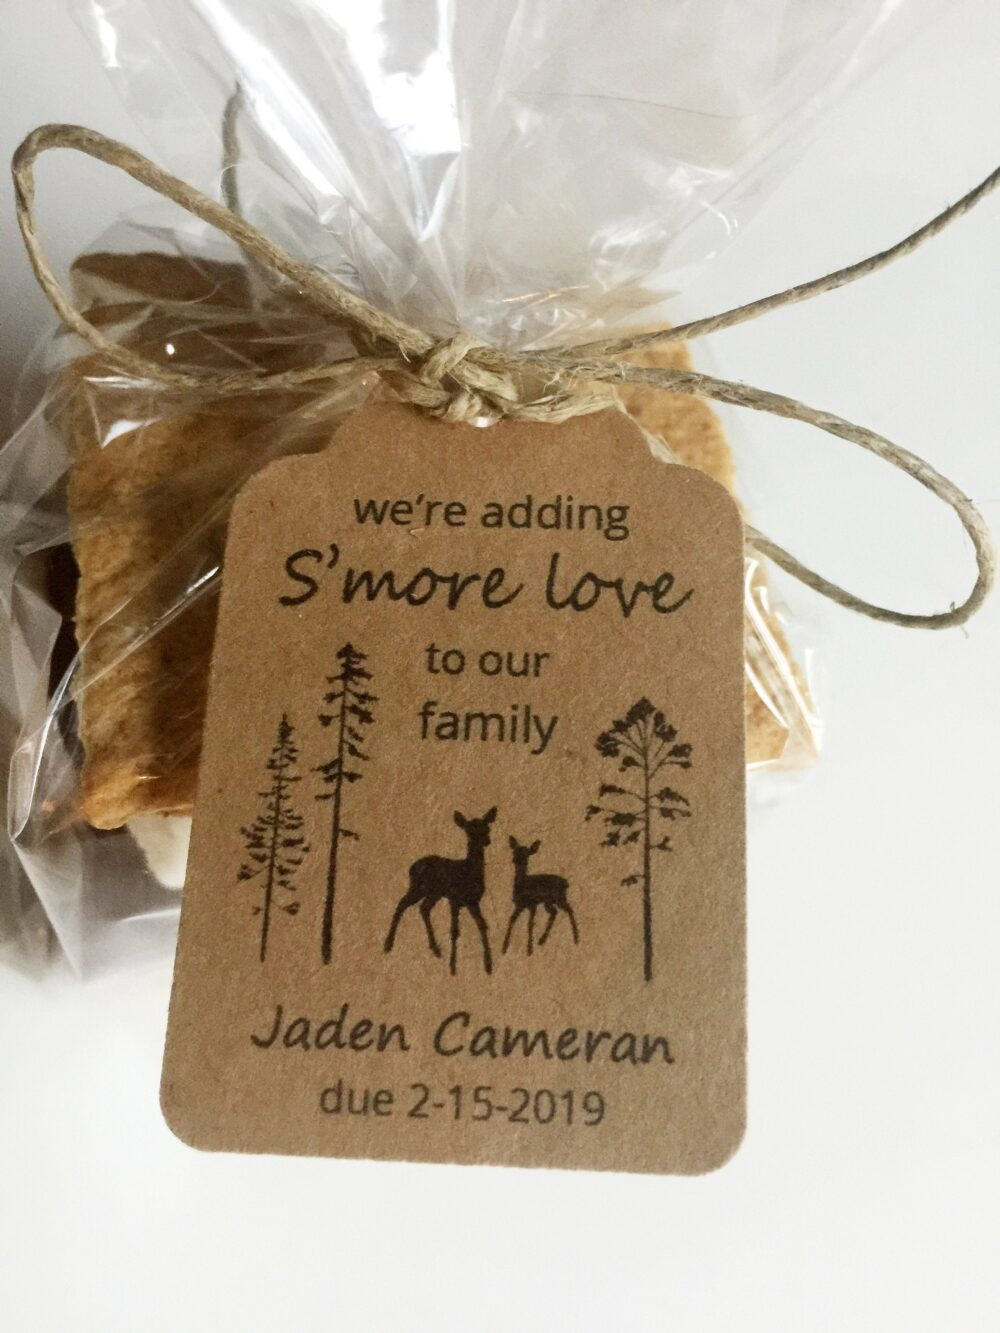 10 Smores Kit, S'mores Kits, Wedding Favors, Smore Love, Love Tags, Tag, Smores Baby Shower, Rustic Favors